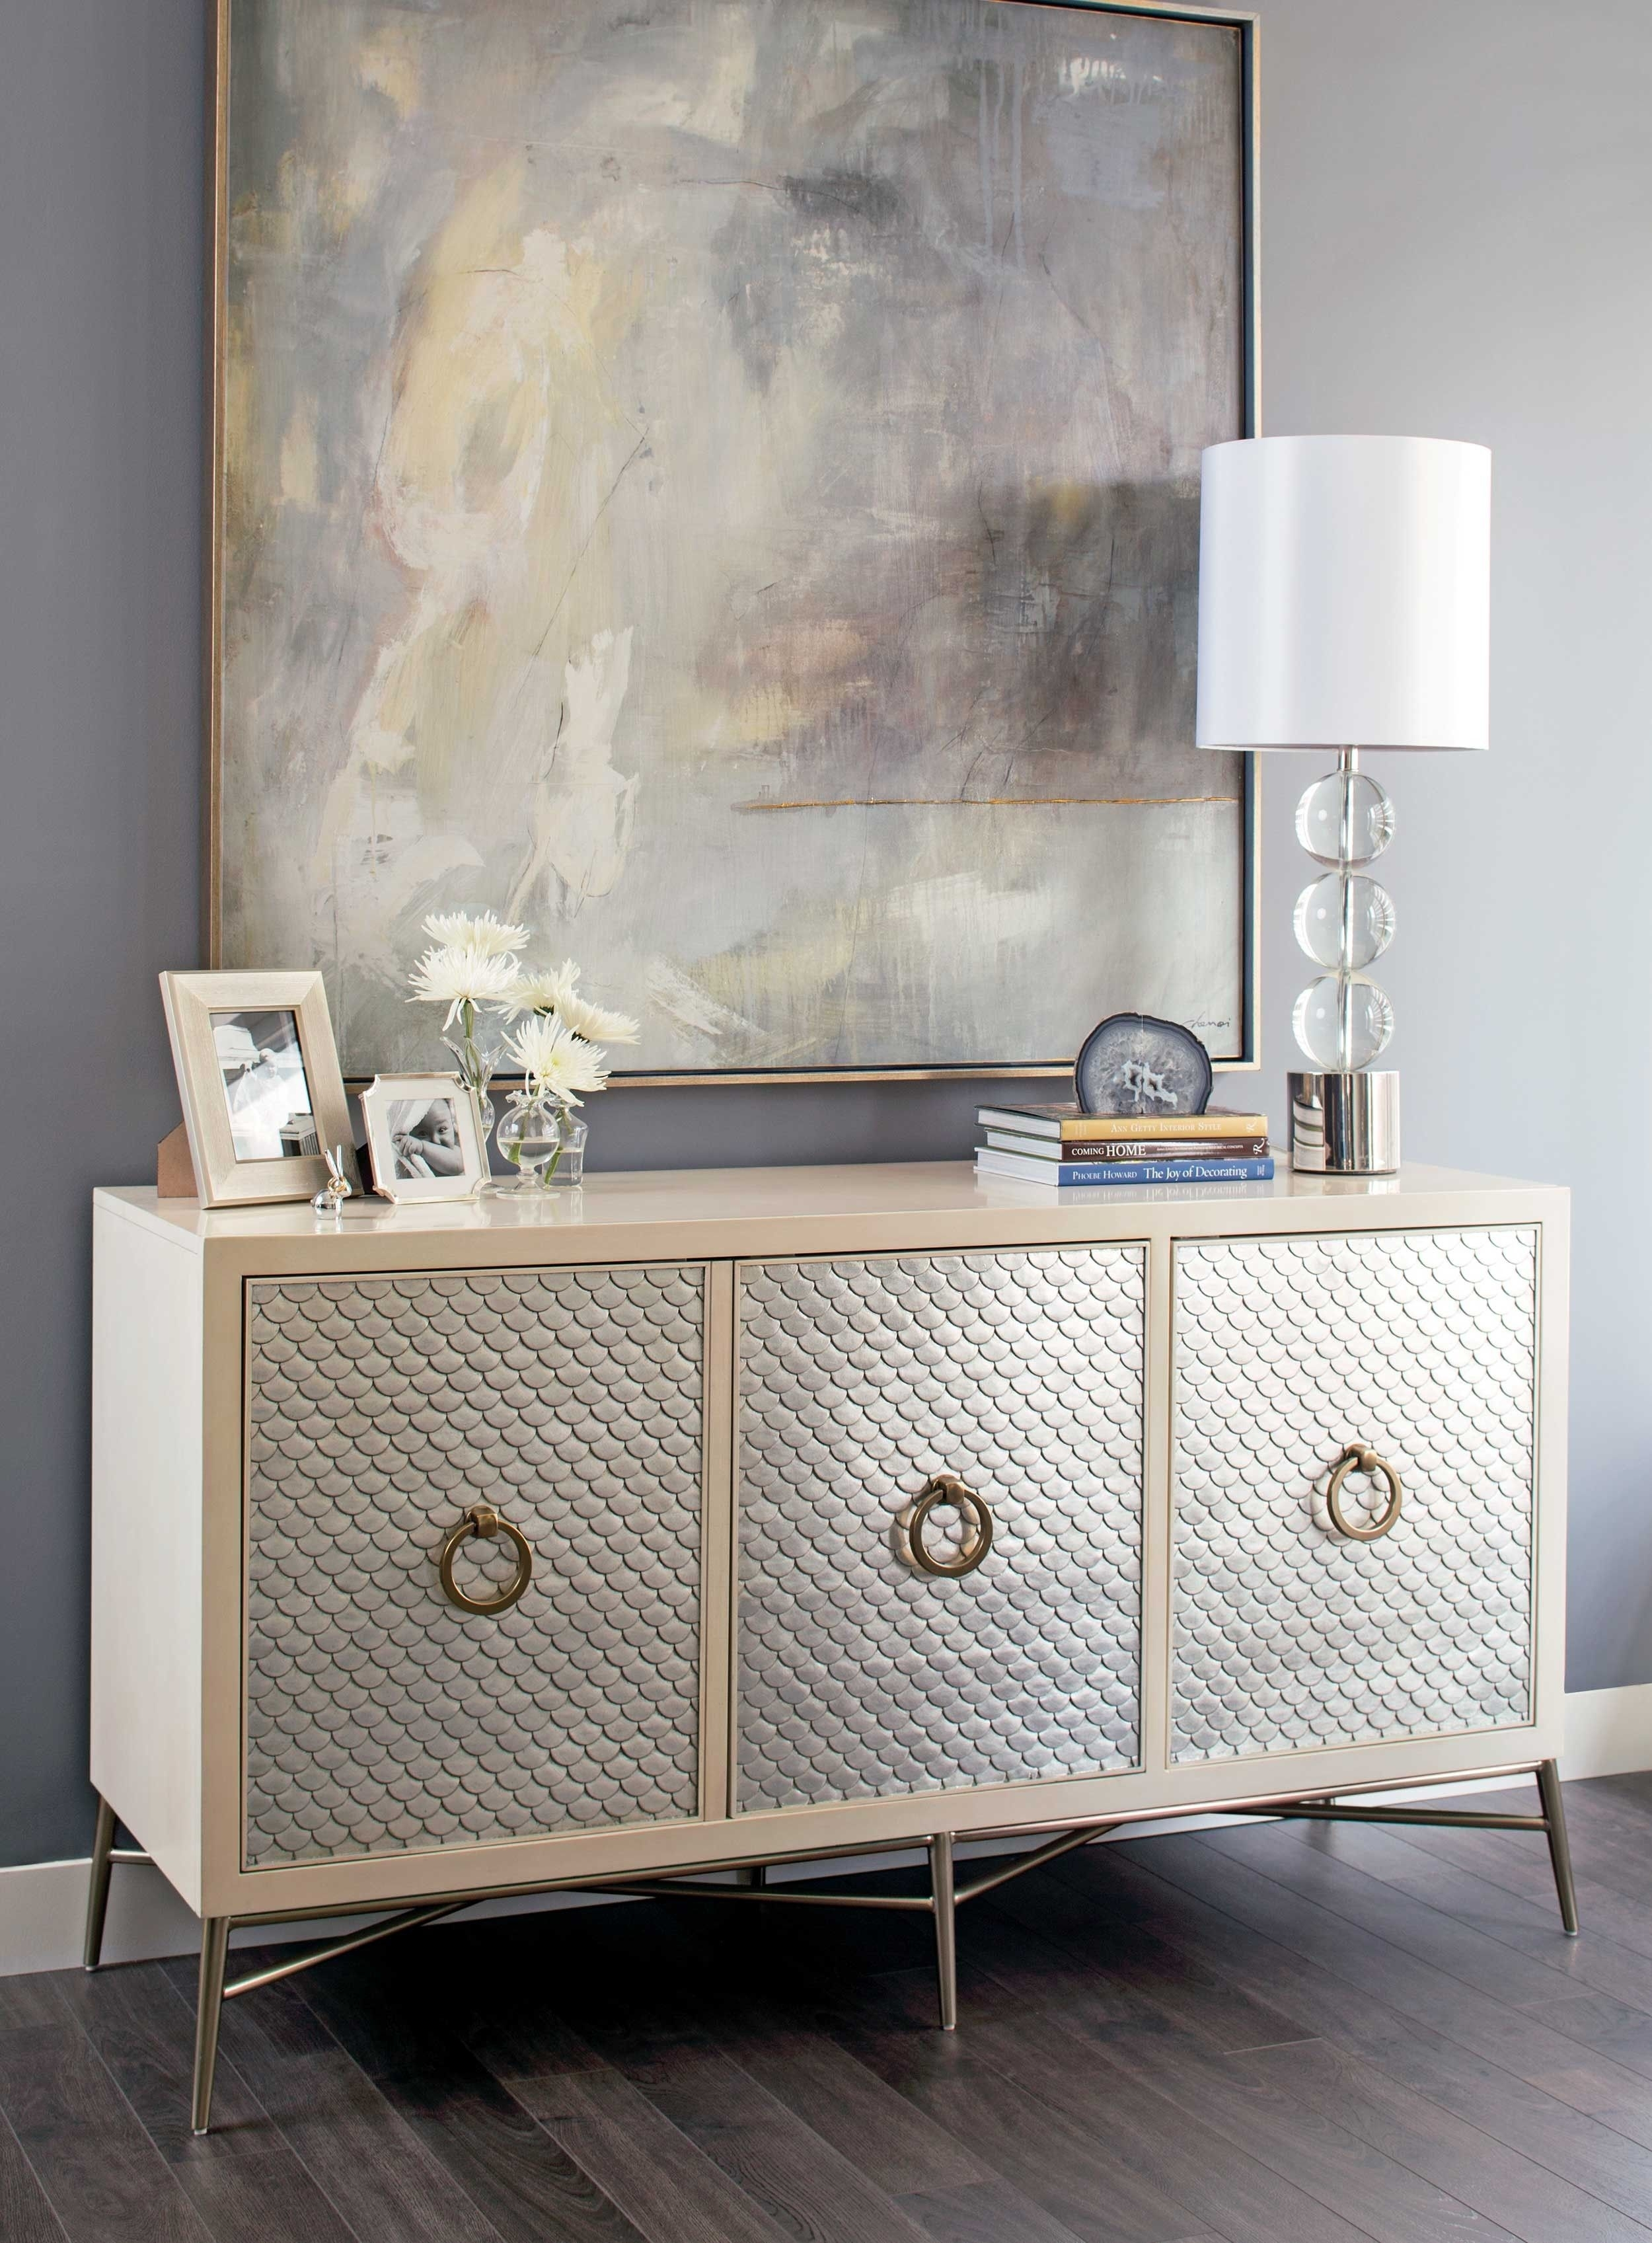 Salon Media Console | My Home My World | Pinterest | Home Decor Throughout Most Popular Capiz Refinement Sideboards (View 18 of 20)